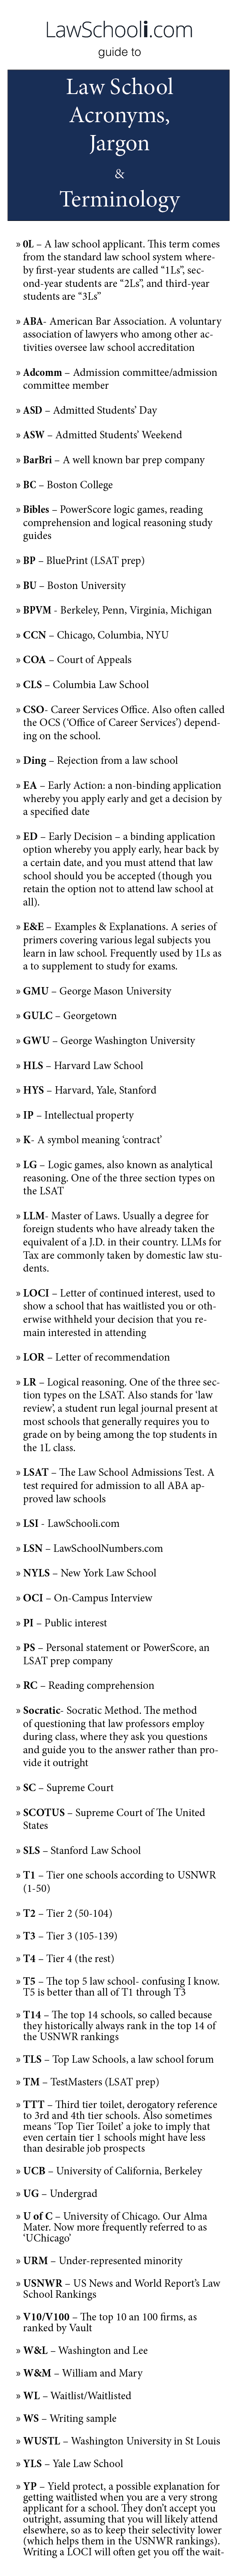 254 best lsat images on pinterest law school lsat prep and colleges malvernweather Image collections